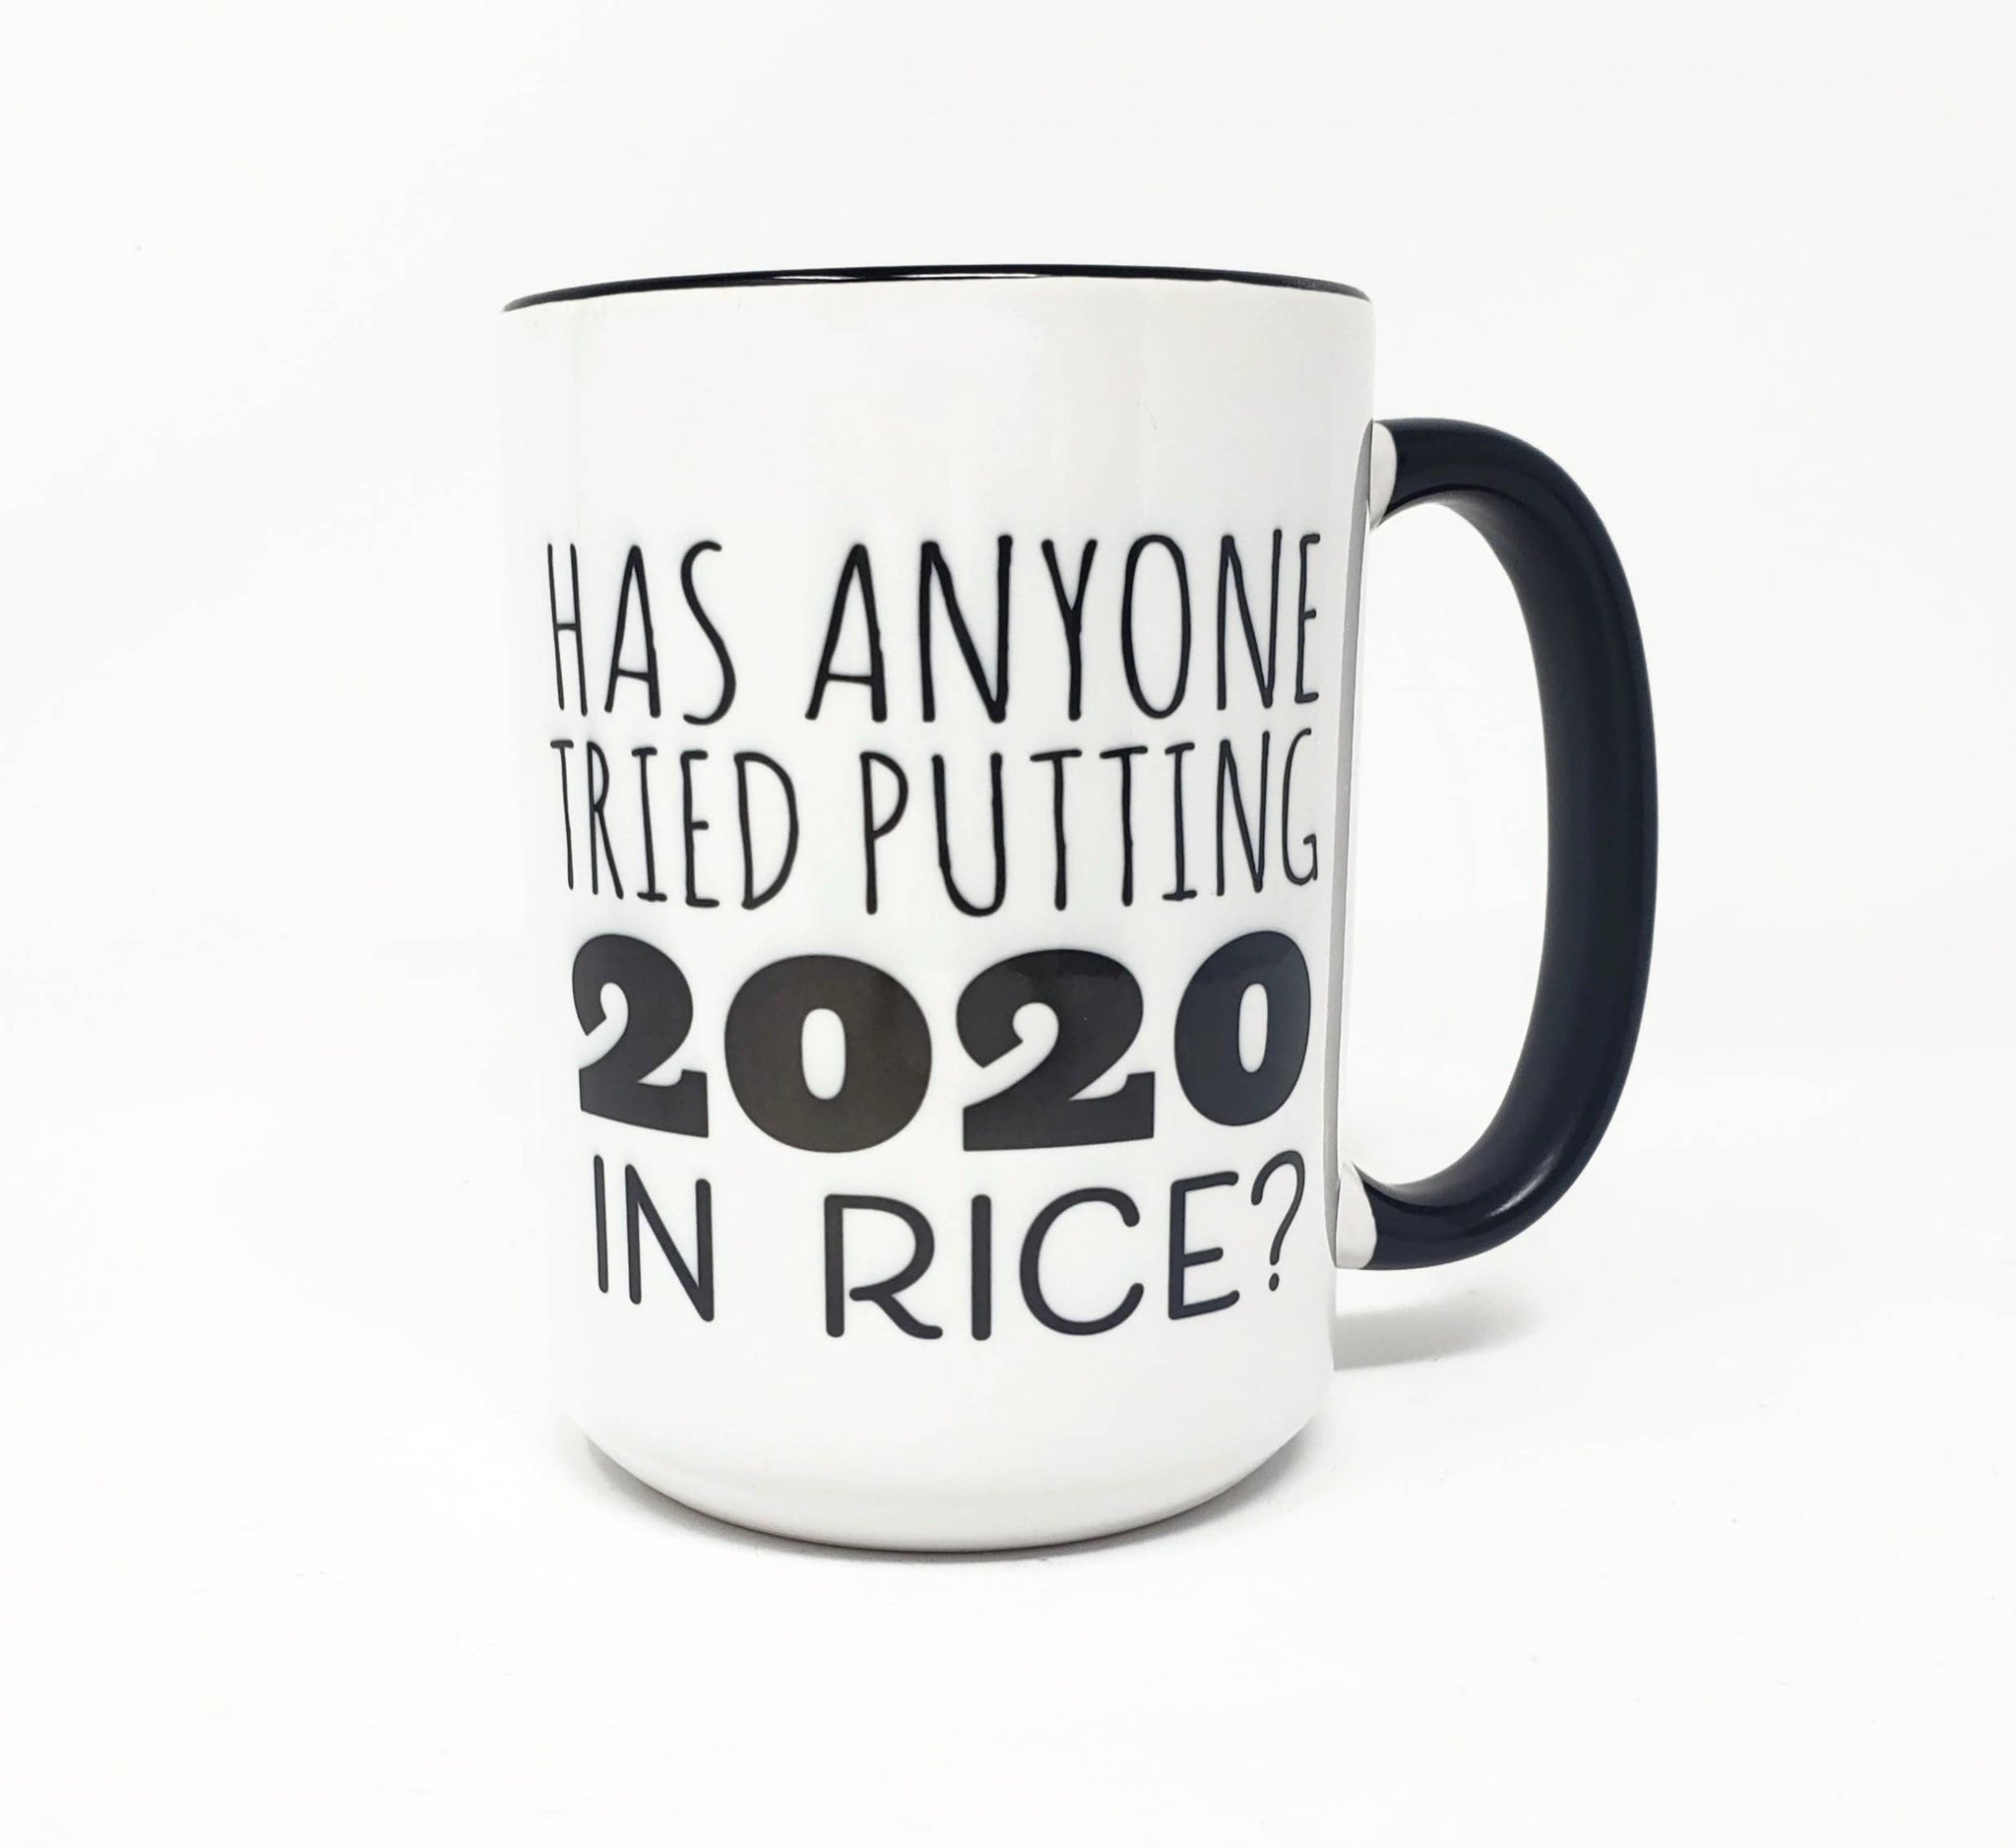 15 oz Mug - Has Anyone Tried Putting 2020 in Rice?